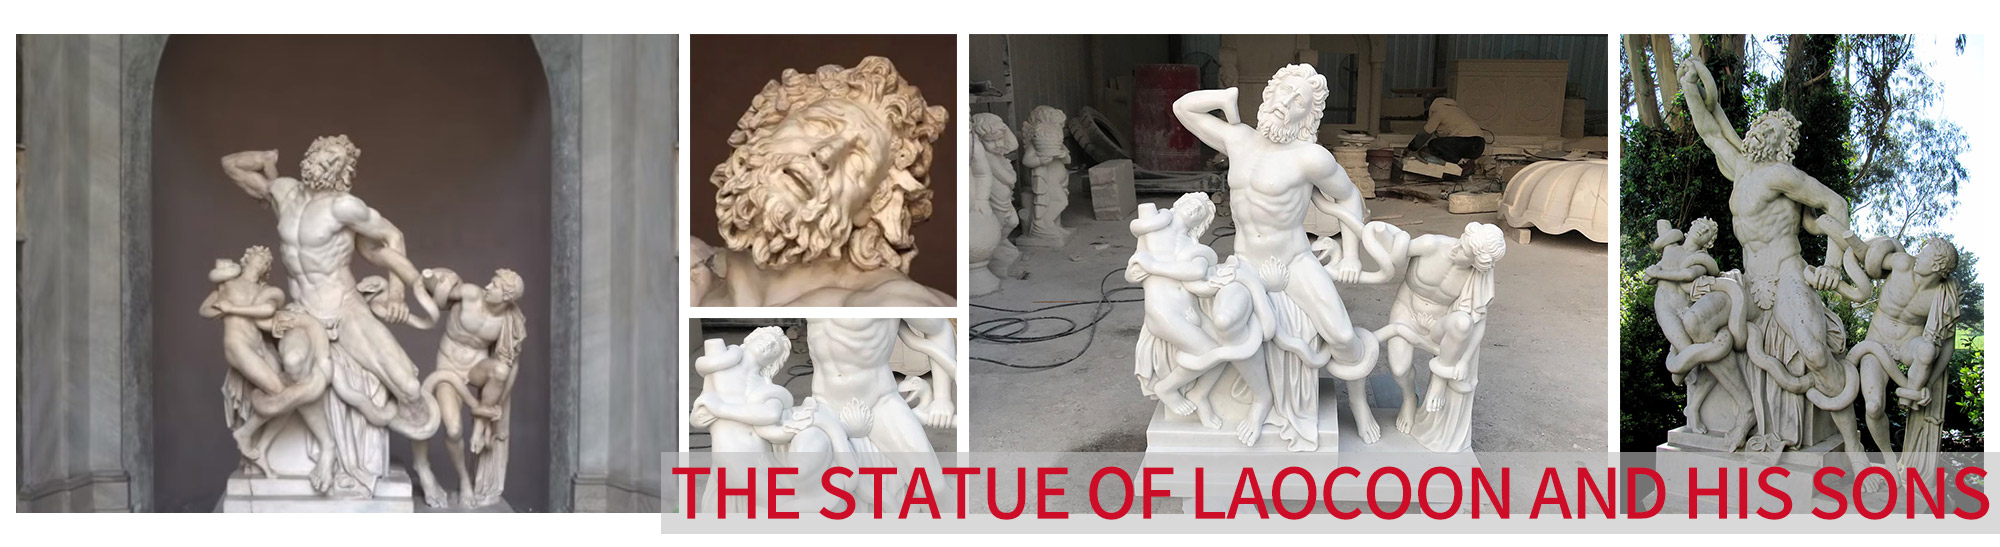 the-statue-of-laocoon-and-his-sons